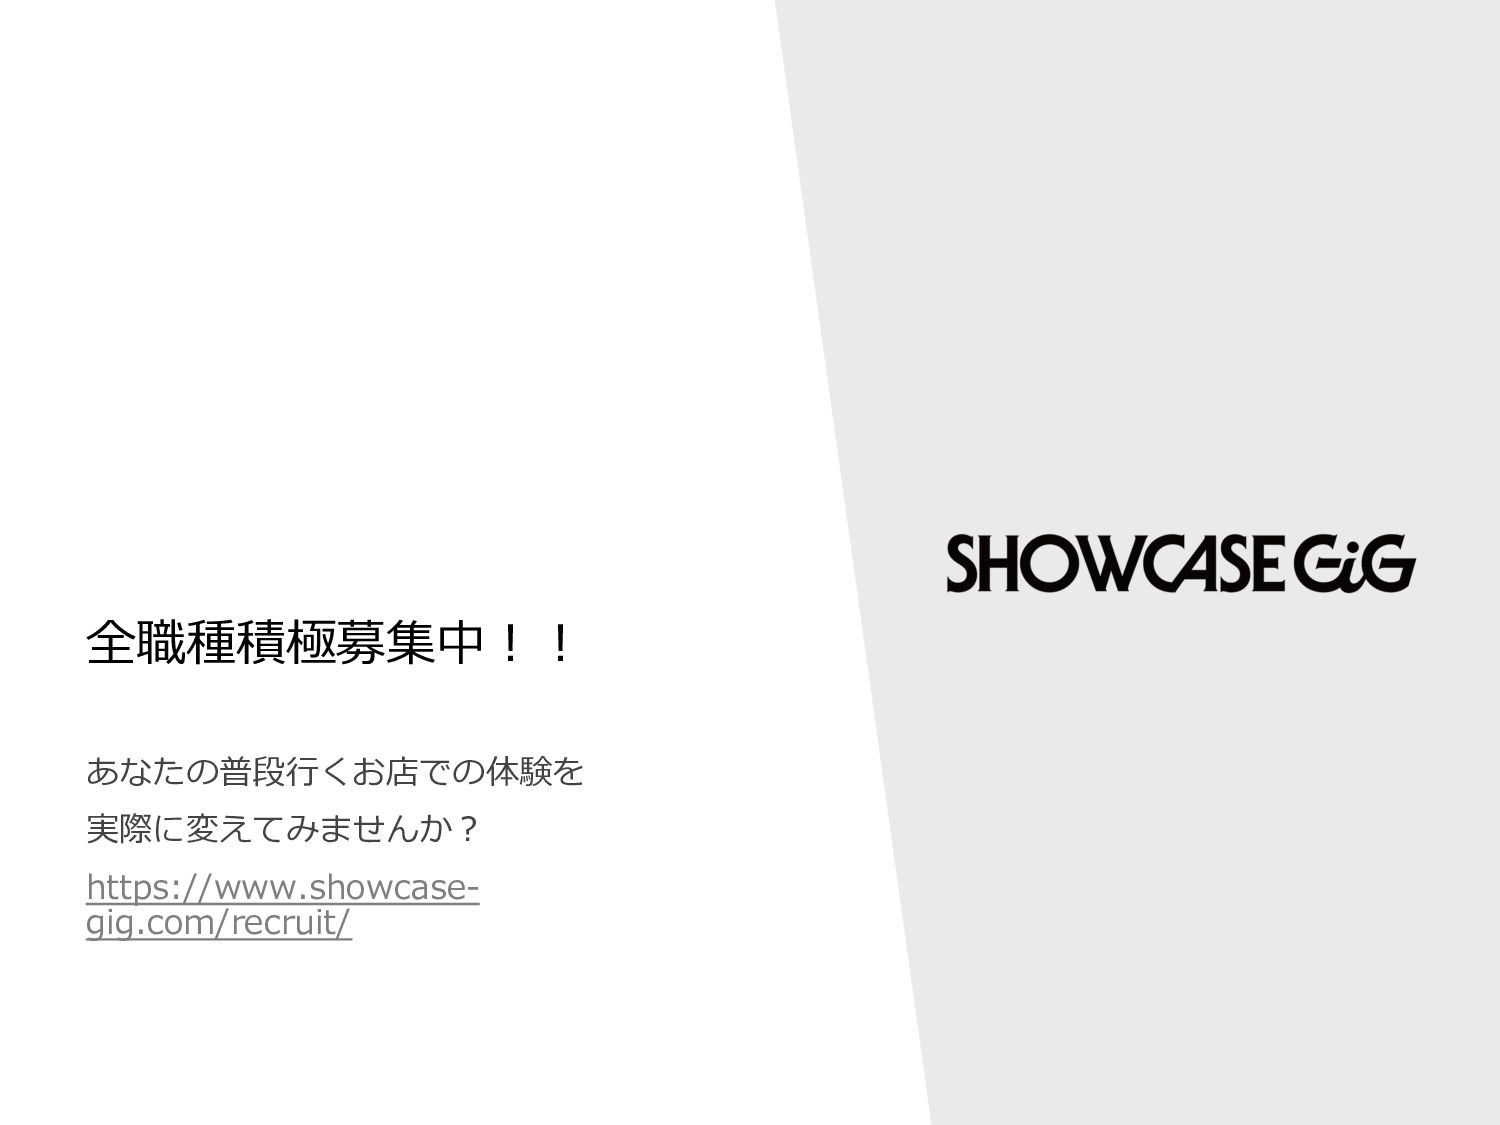 ©Showcase Gig 「未来の消費」をつくりだそう